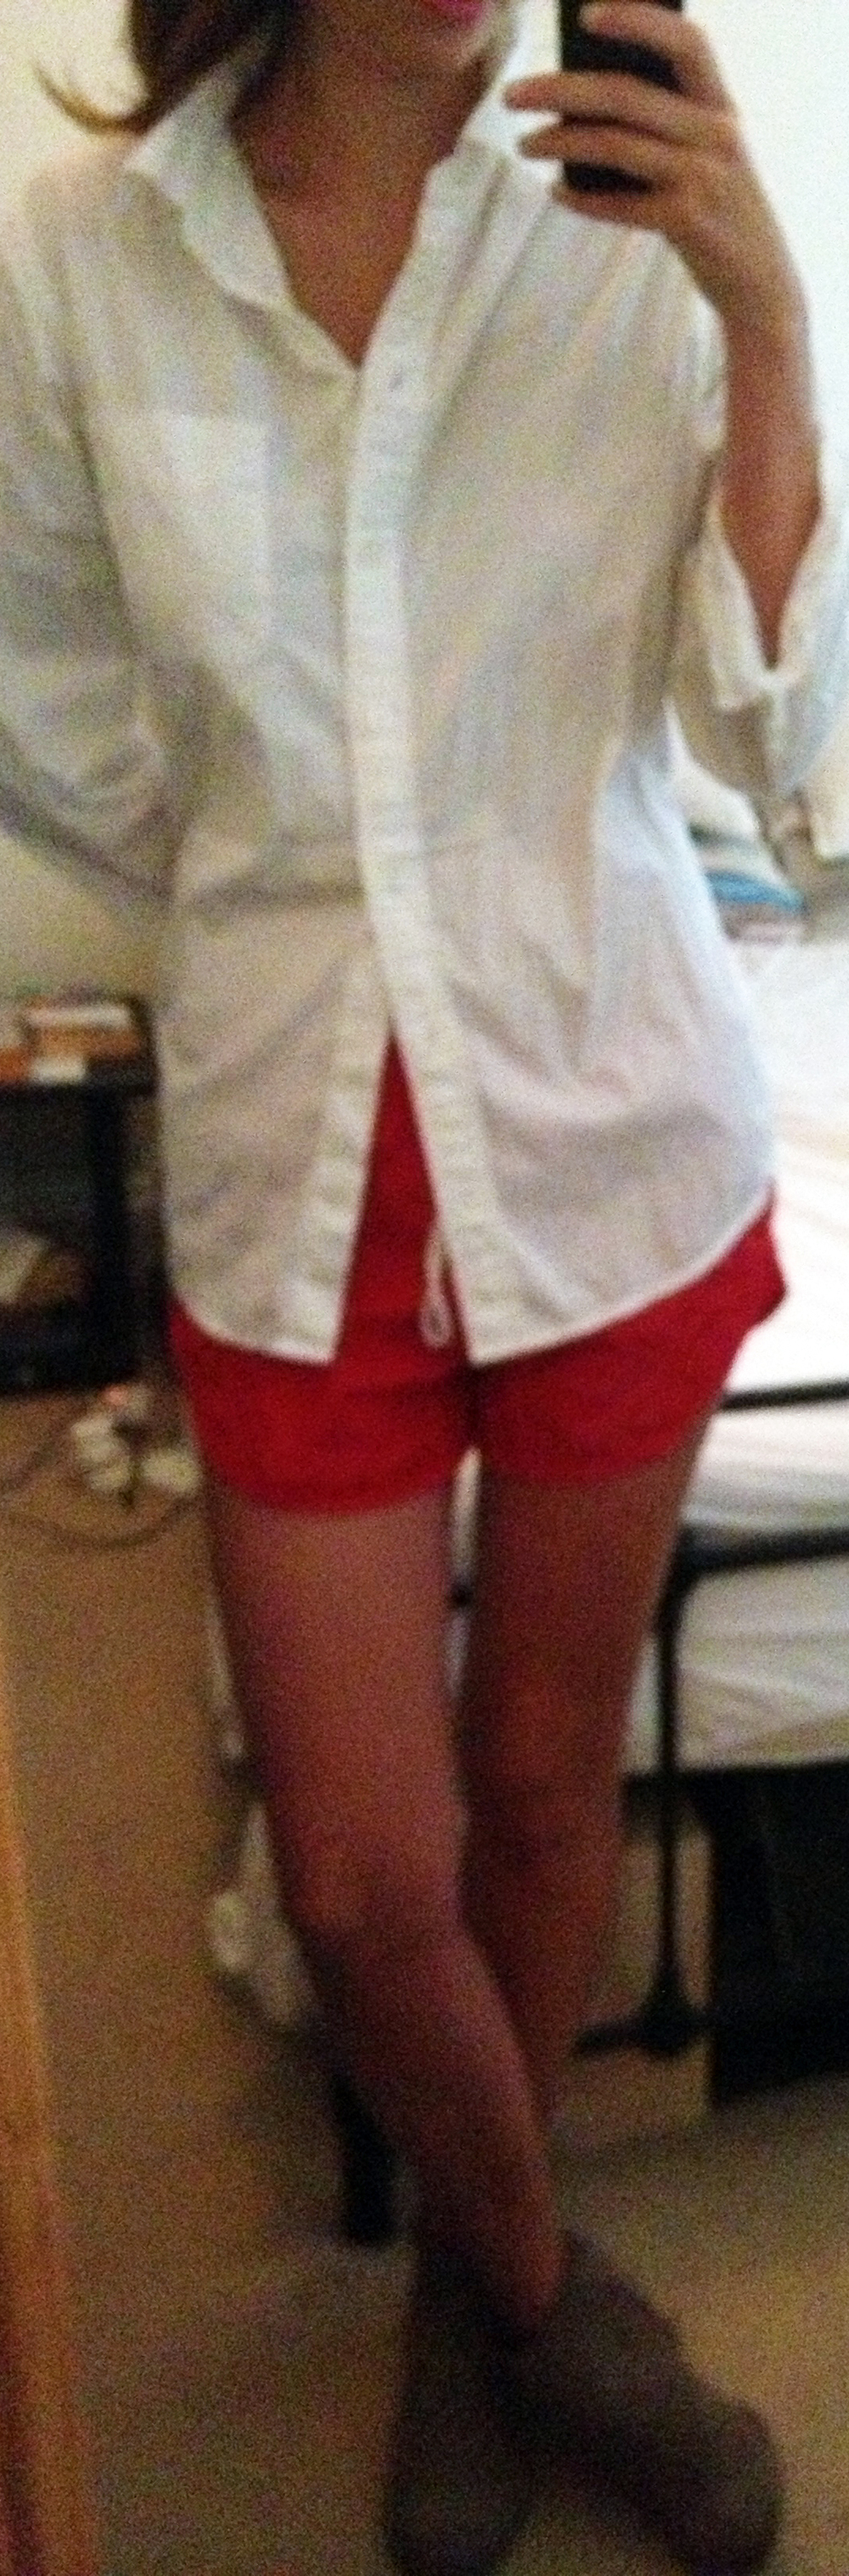 Target White Button-Down Shirt ,  American Apparel Nylon Shorts ,  Dolce Vita Suede Booties